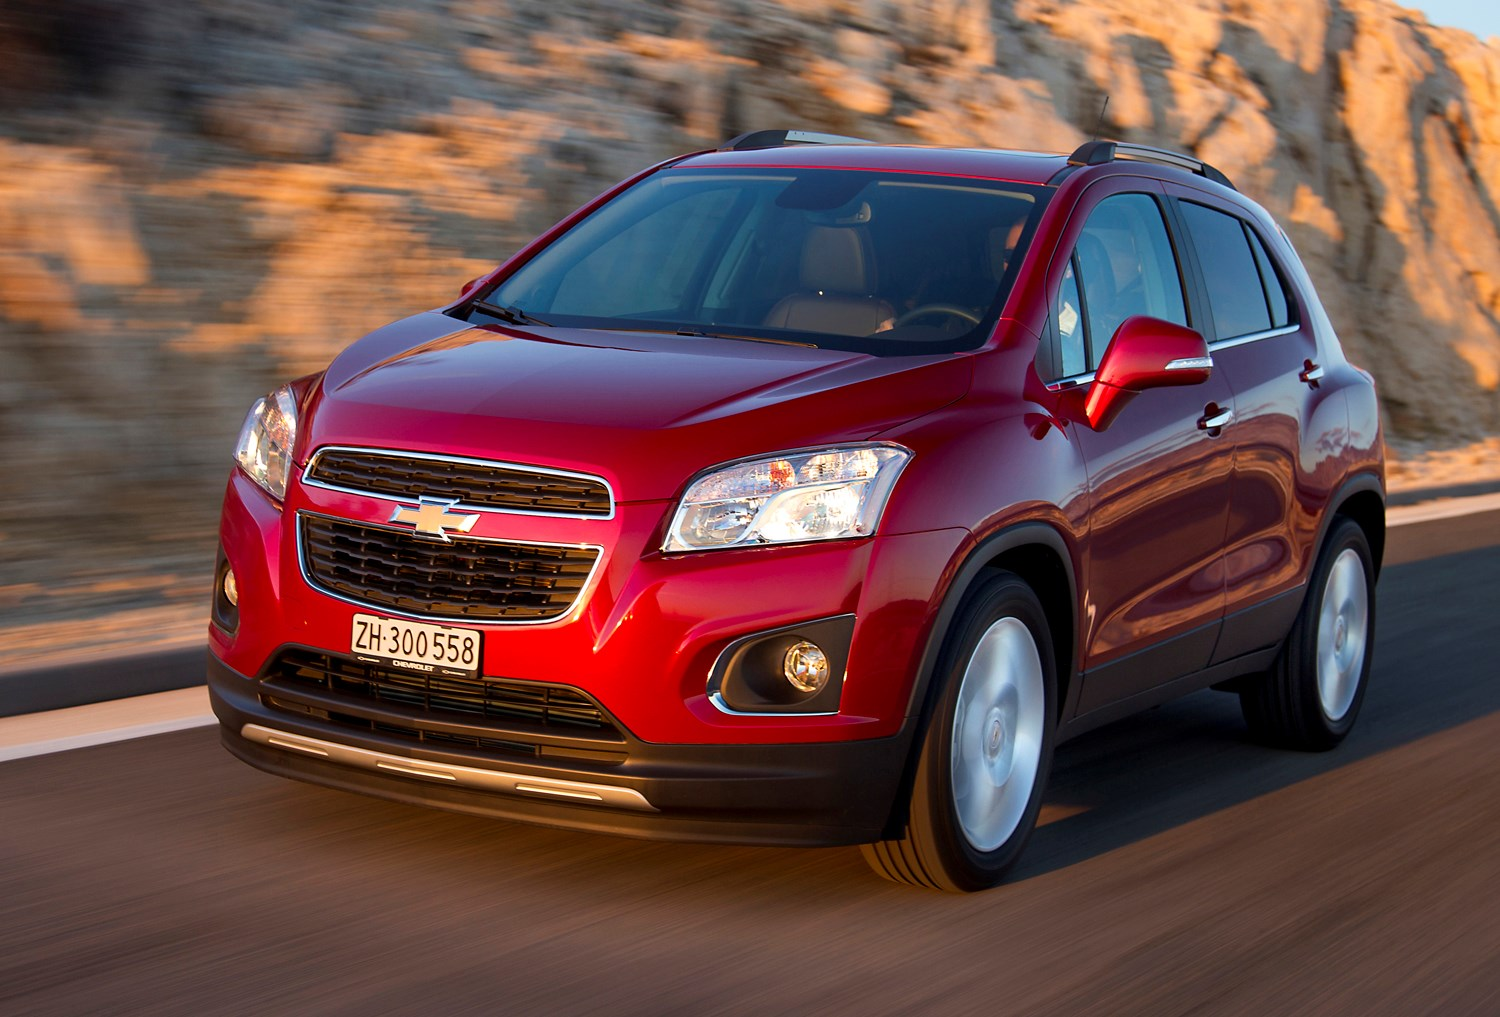 Cars For Sale In Orlando >> Chevrolet Trax Hatchback Review (2013 - 2015) | Parkers